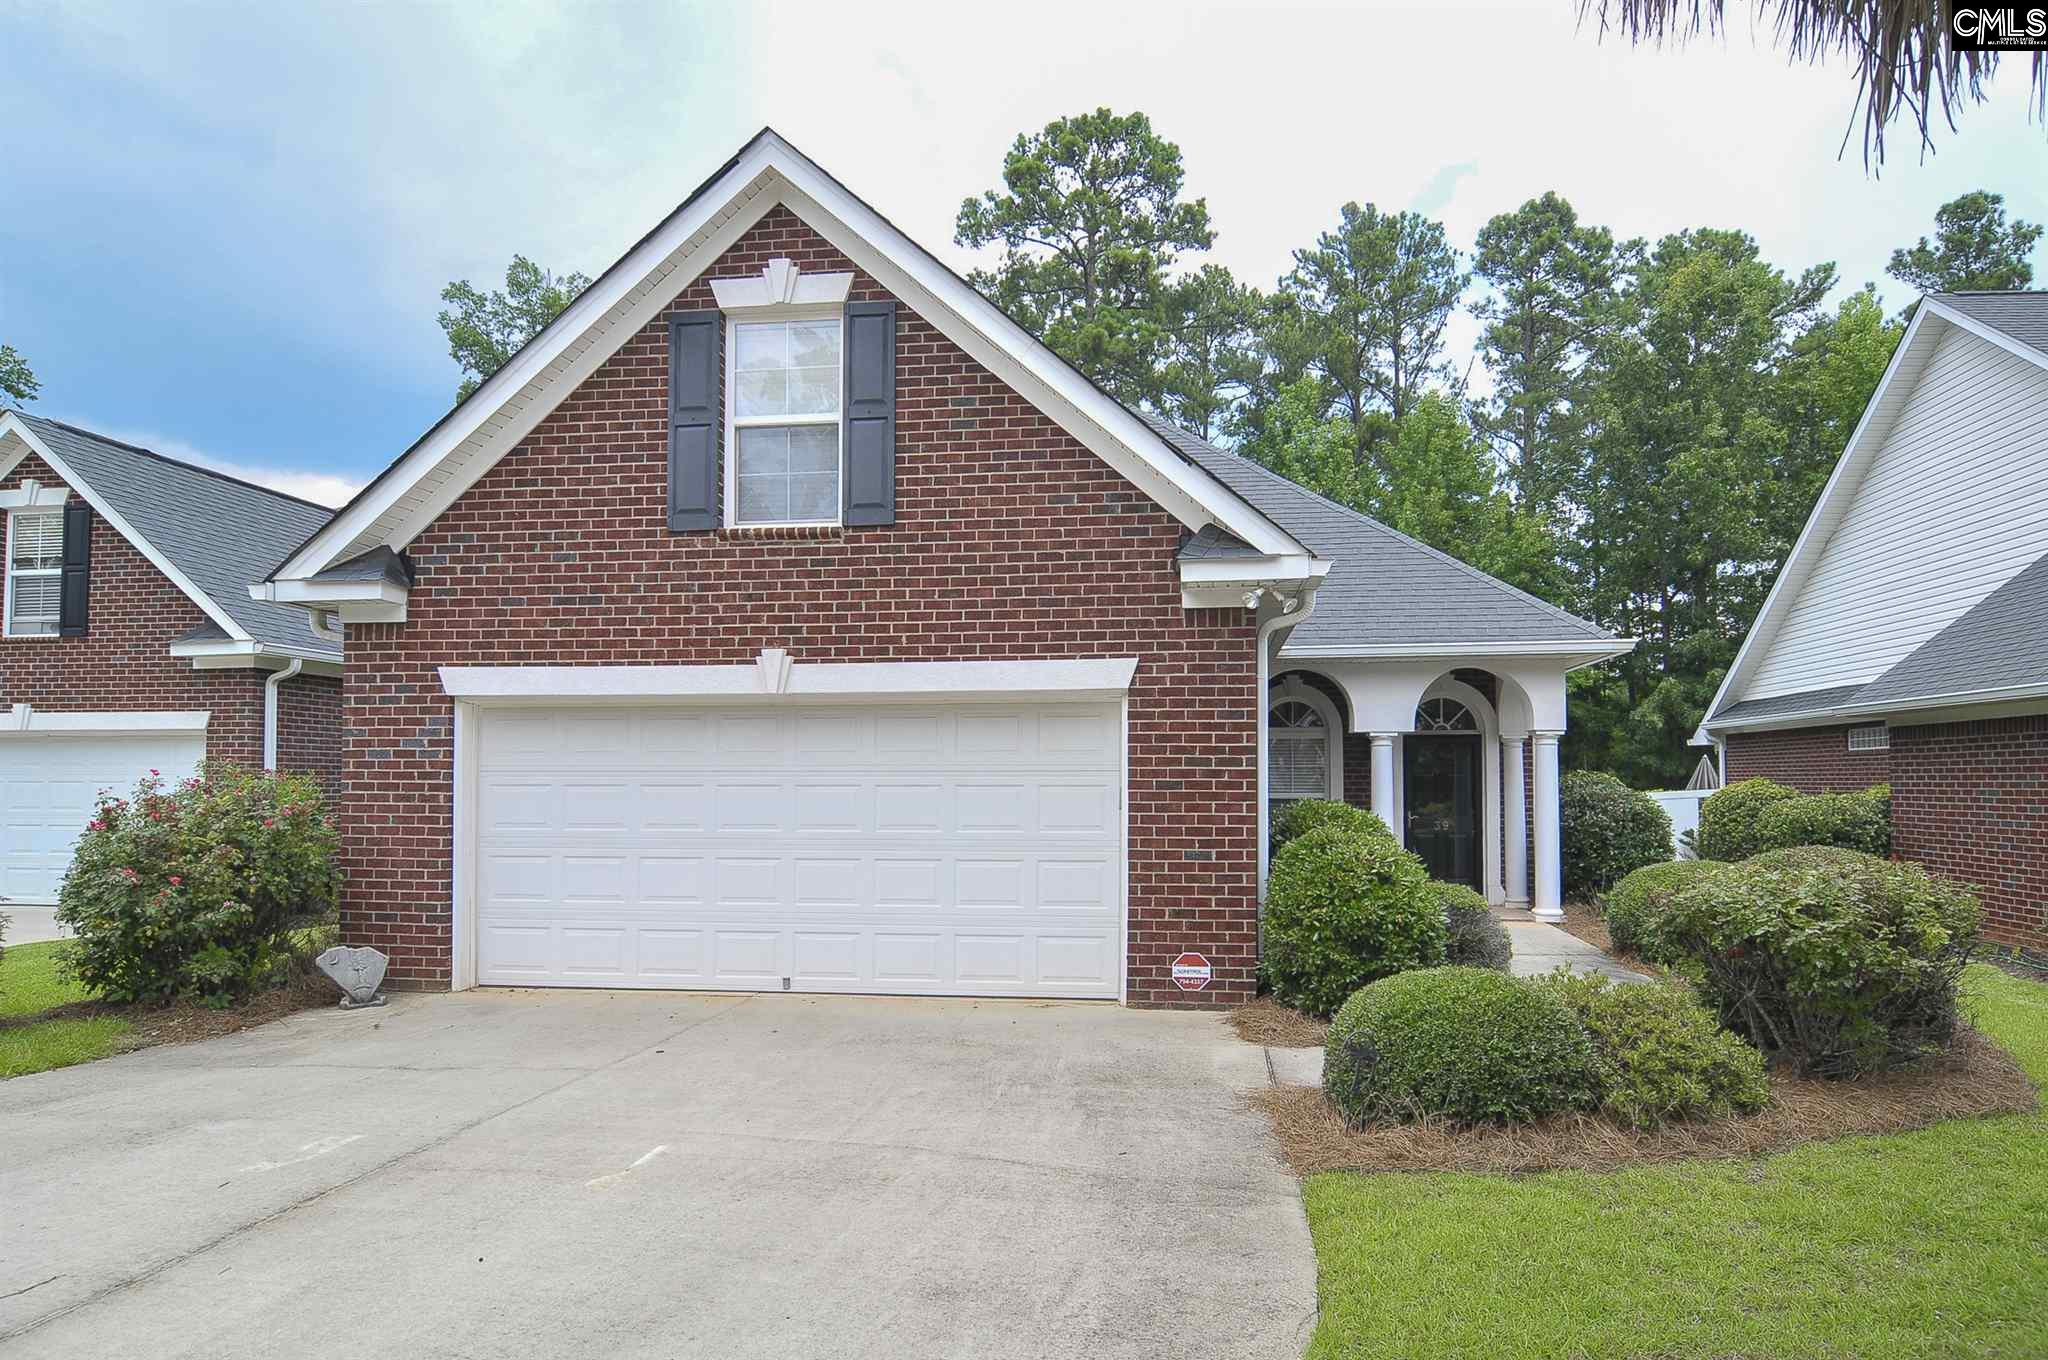 39 Palmetto Wood Irmo, SC 29063